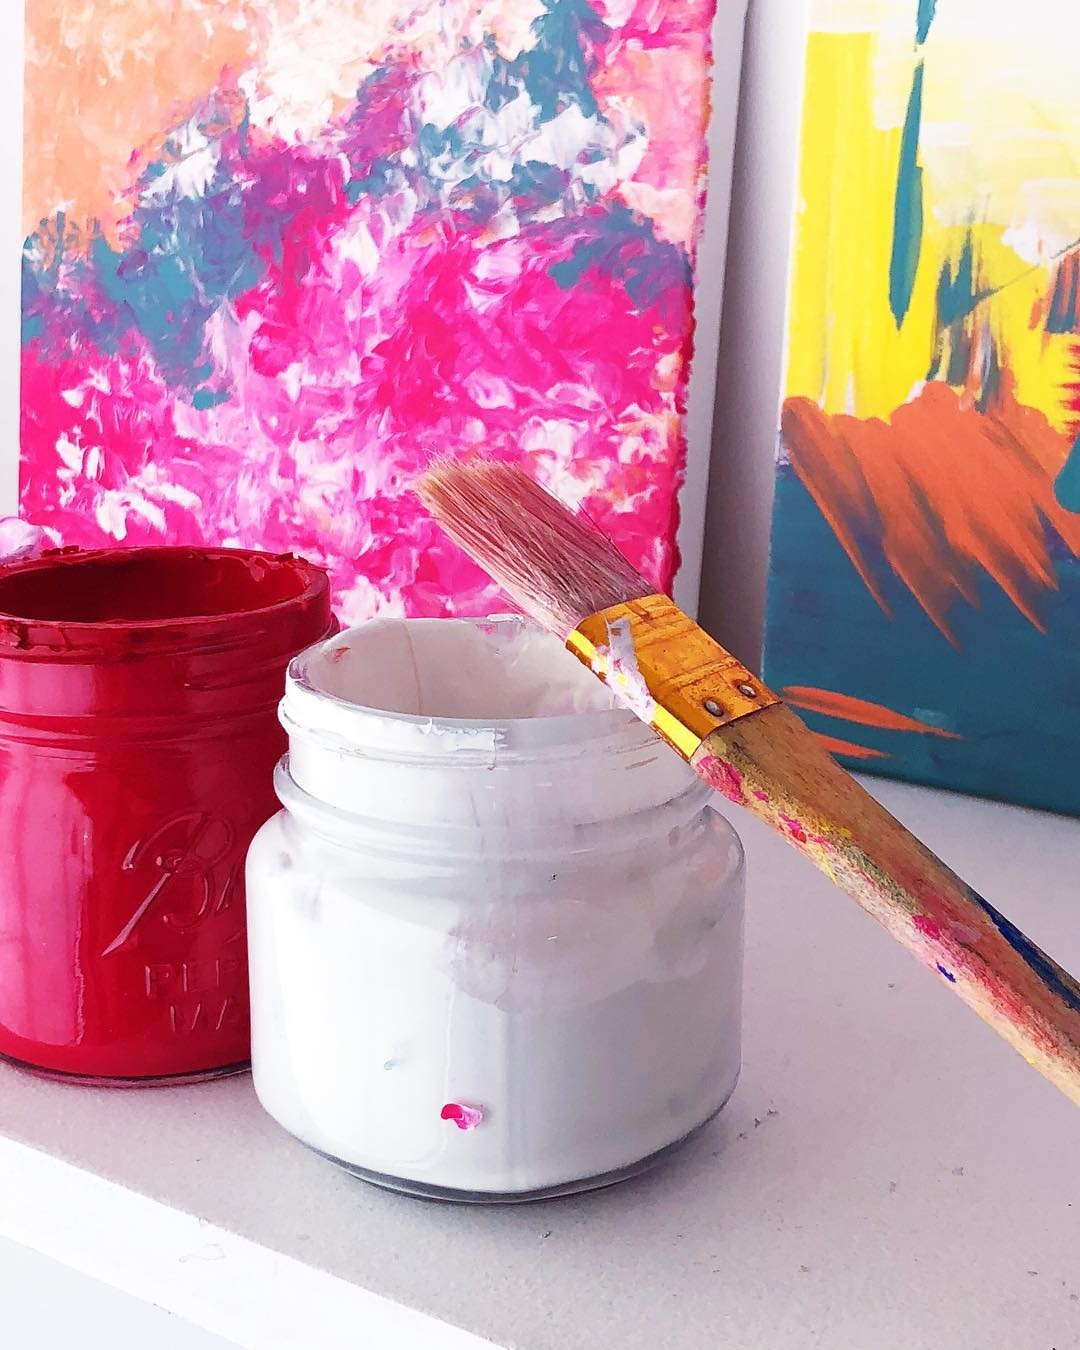 Painting without rules! …